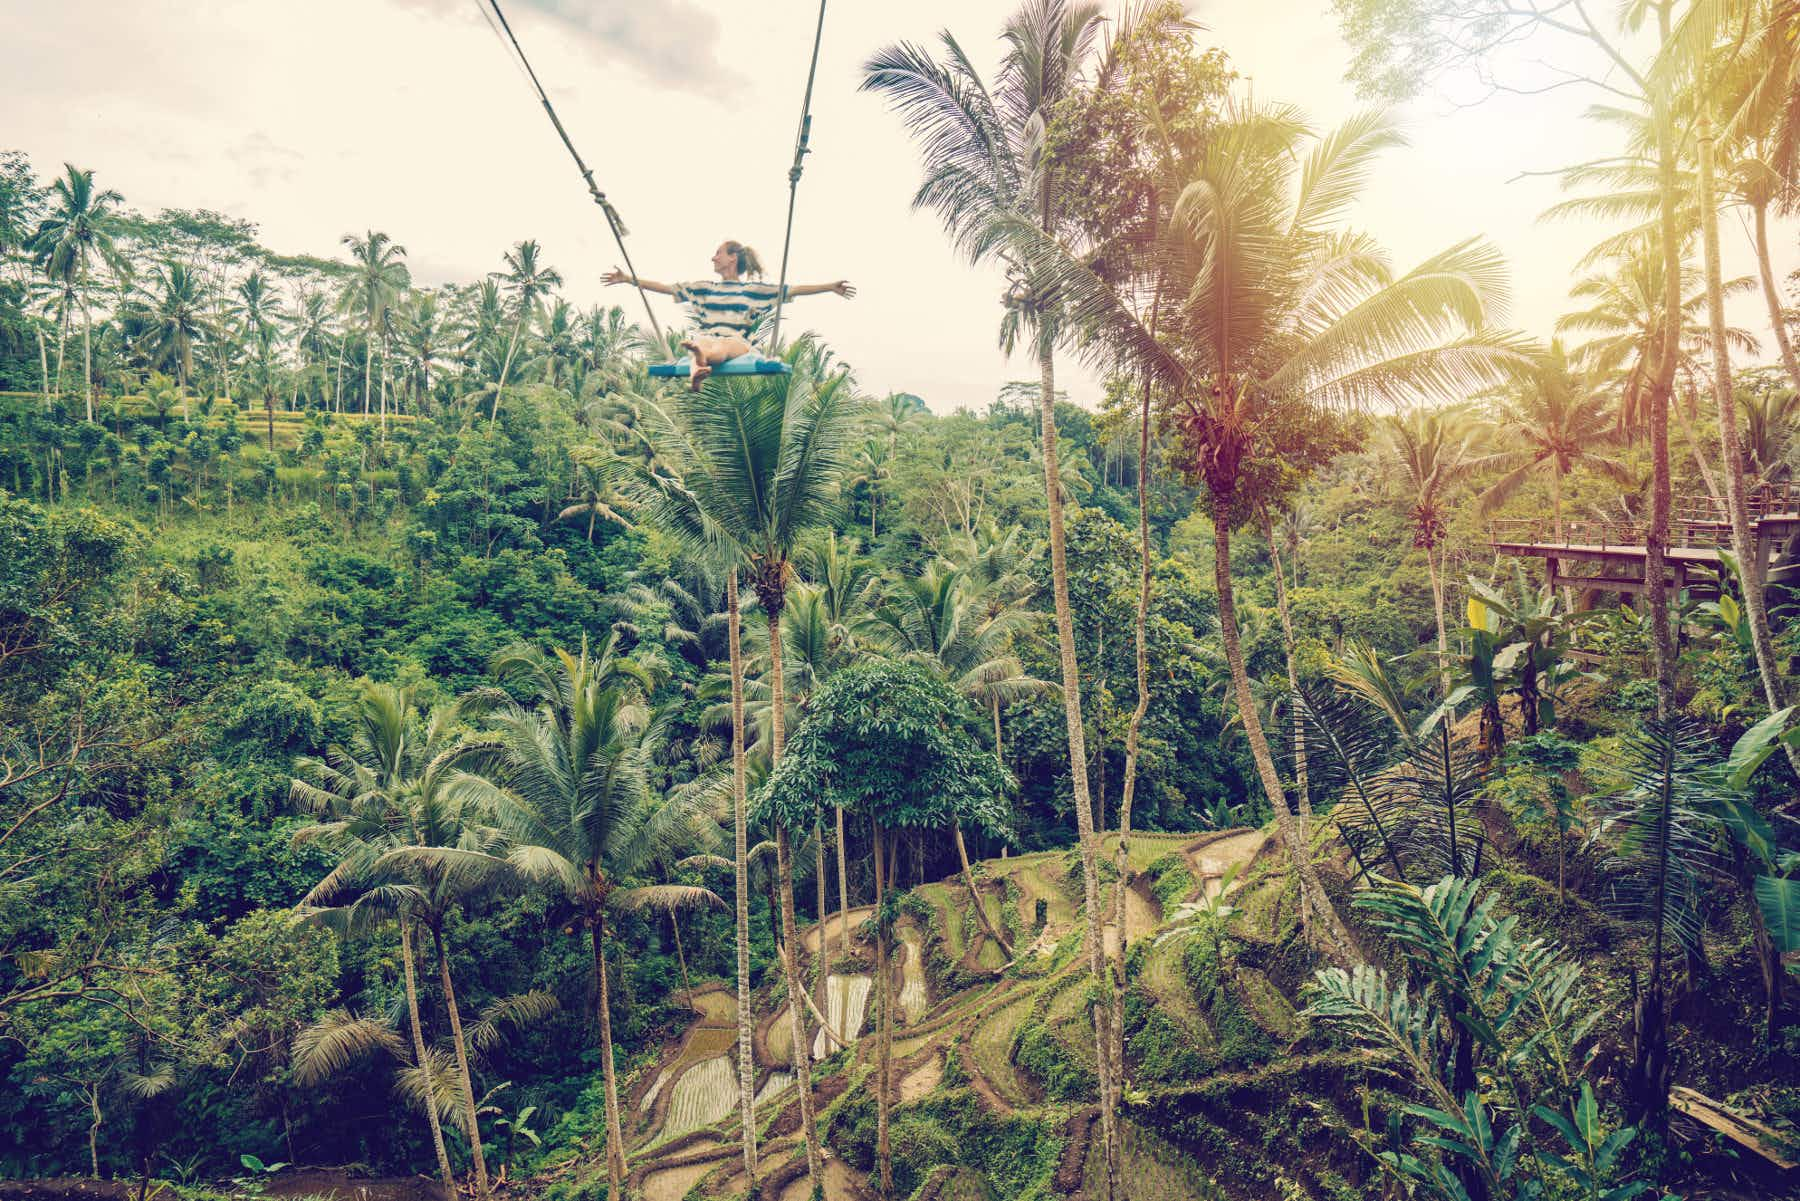 Did you know you can swing over the jungle in Bali?